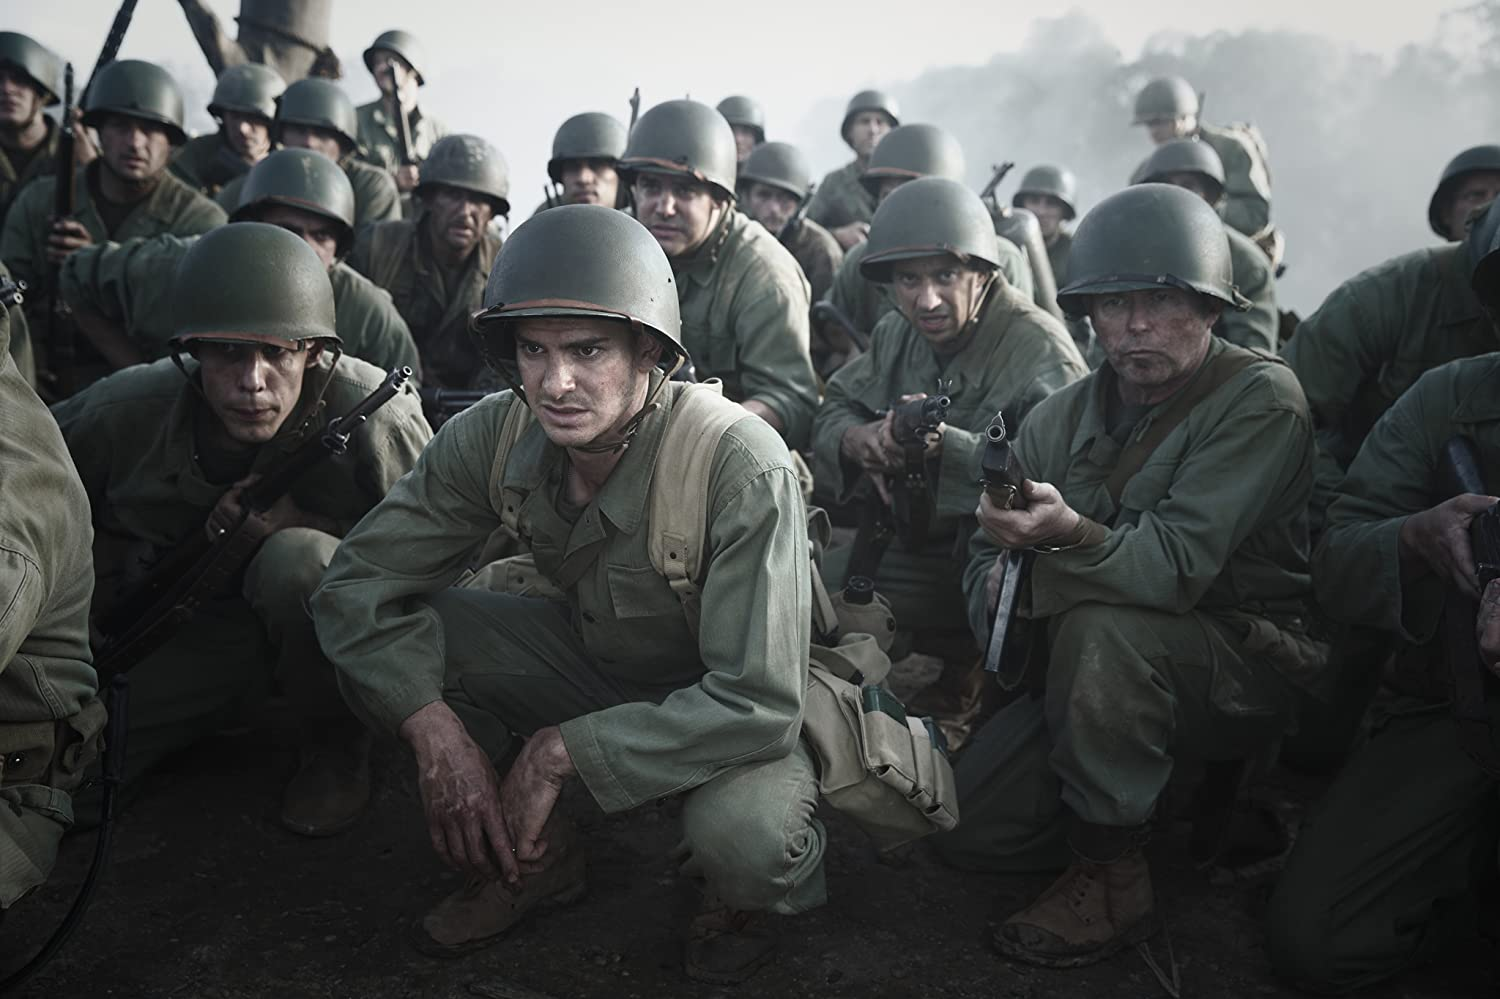 Richard Pyros, Ben Mingay, Andrew Garfield, and Goran D. Kleut in Hacksaw Ridge (2016)